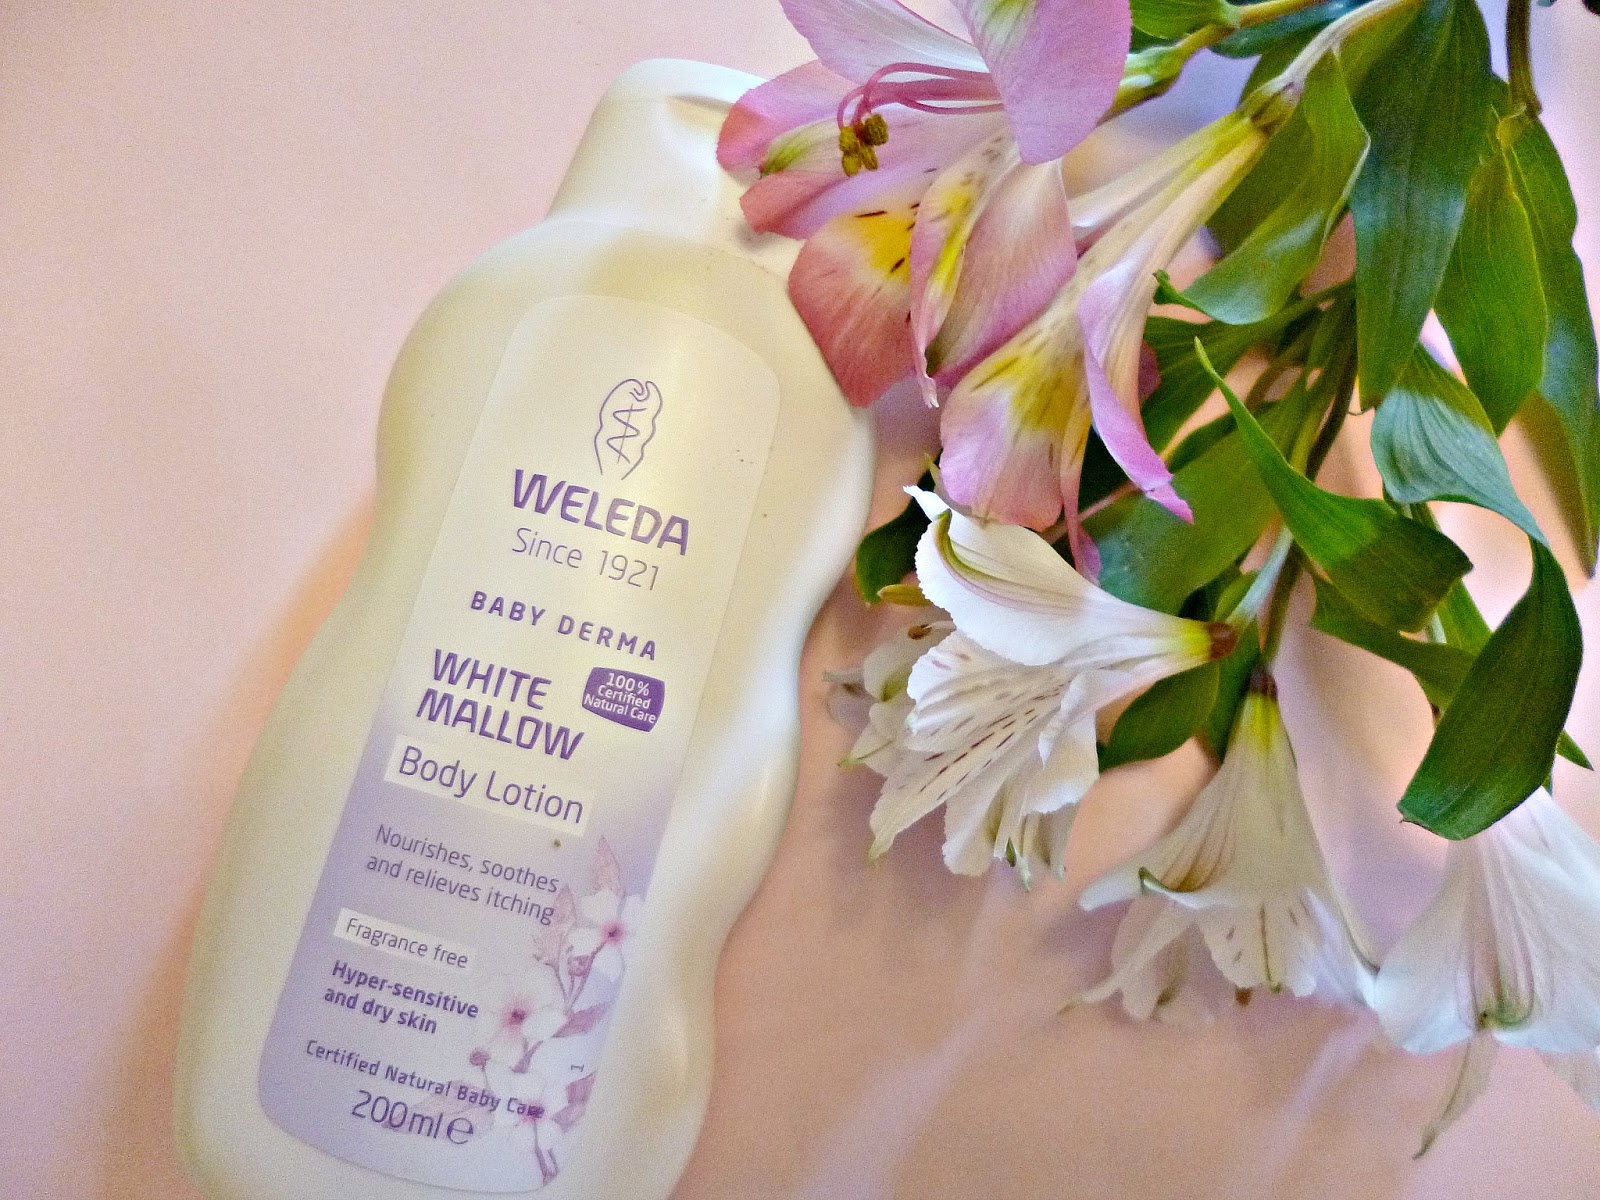 Skincare for sensitive skin: Weleda White Mallow body lotion